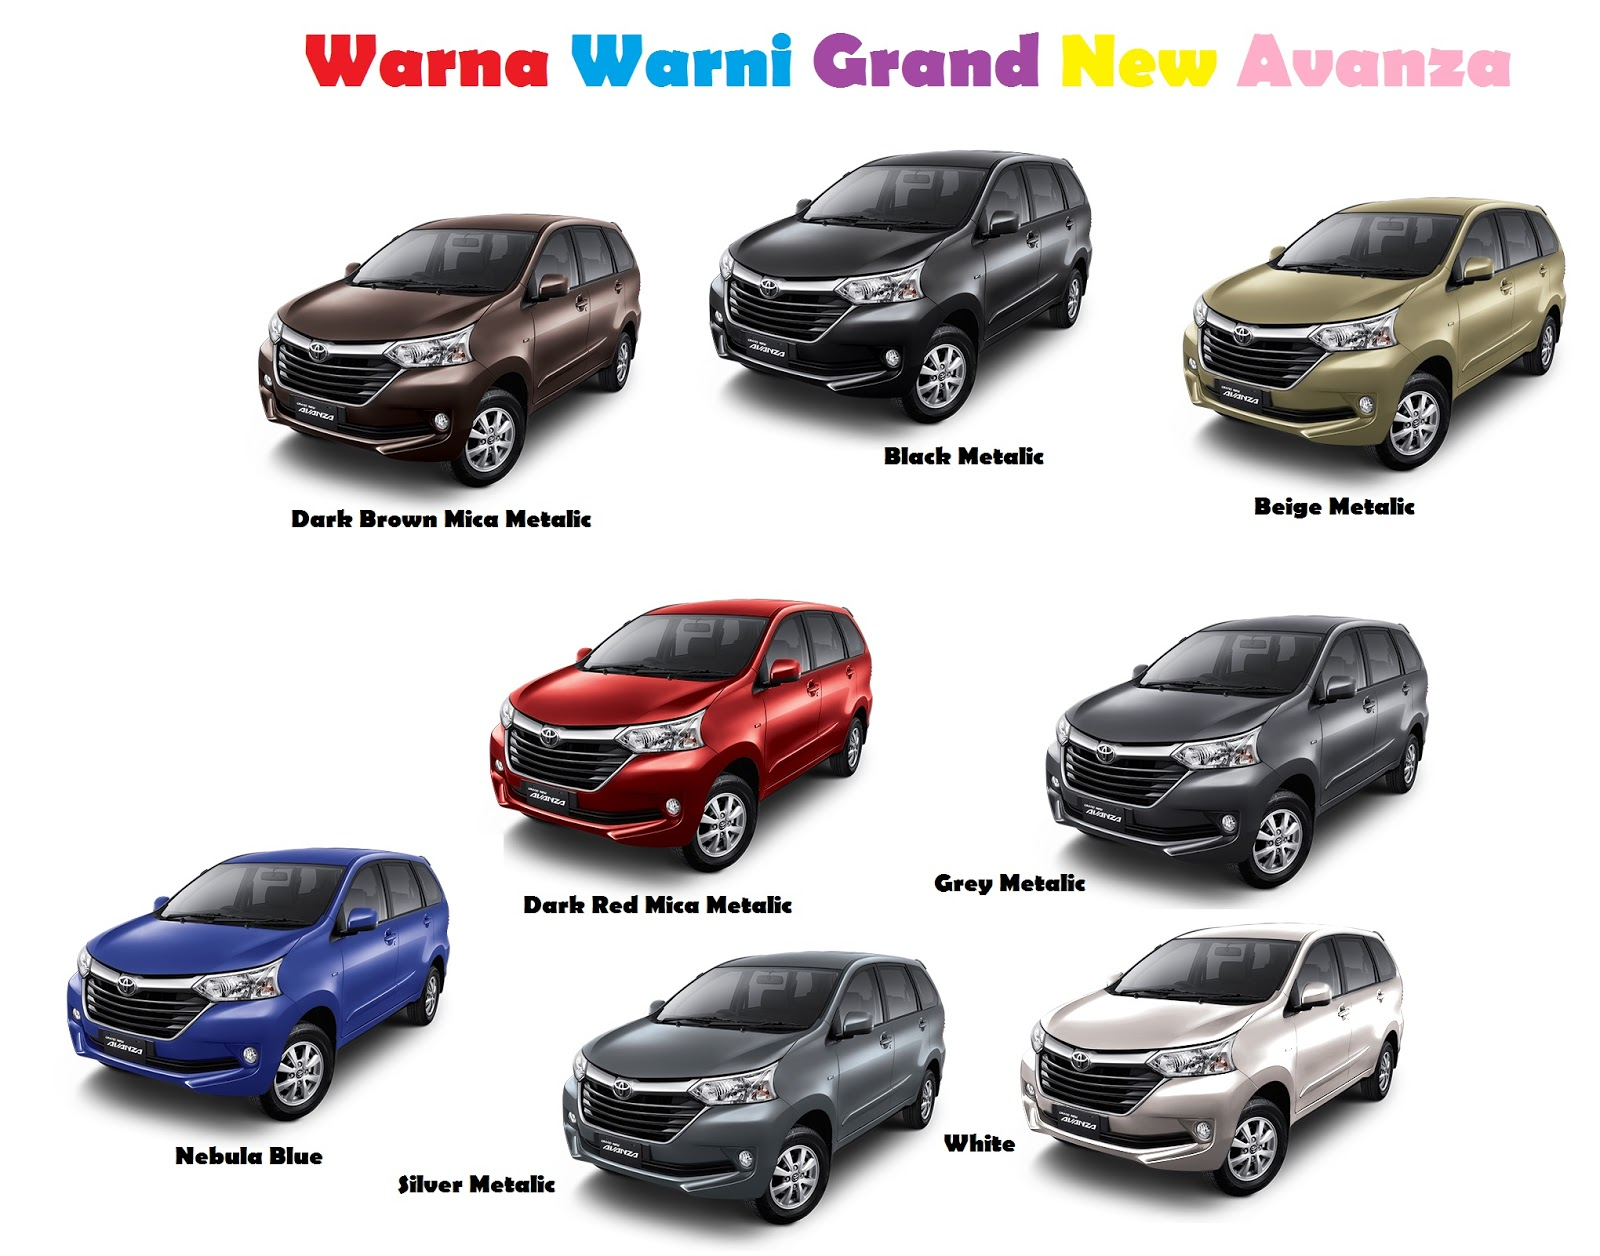 warna grand new avanza dark brown veloz 2015 dan mendaki kemuning